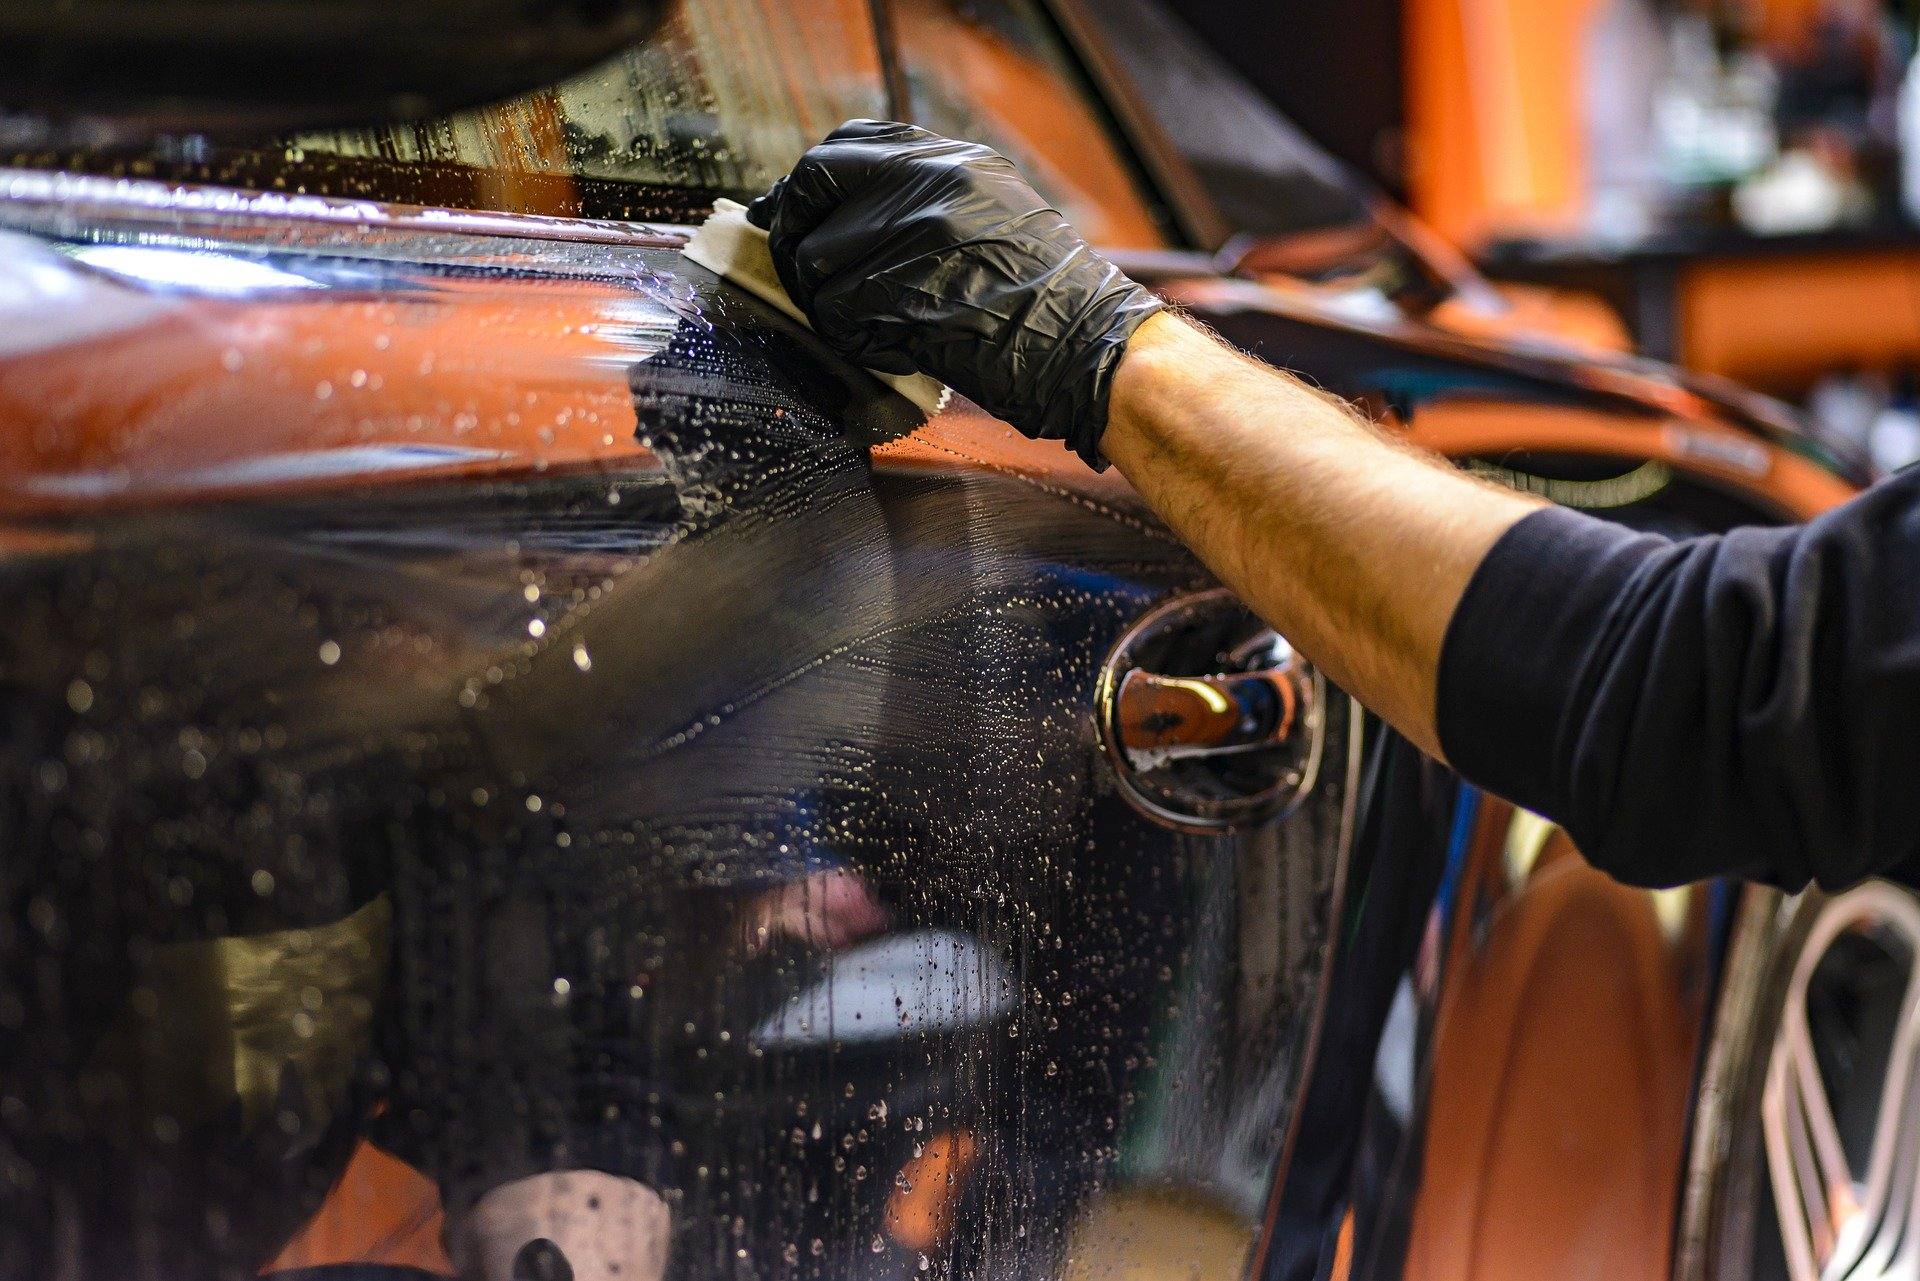 Professional car cleaning, polishing and care - this is how it works!